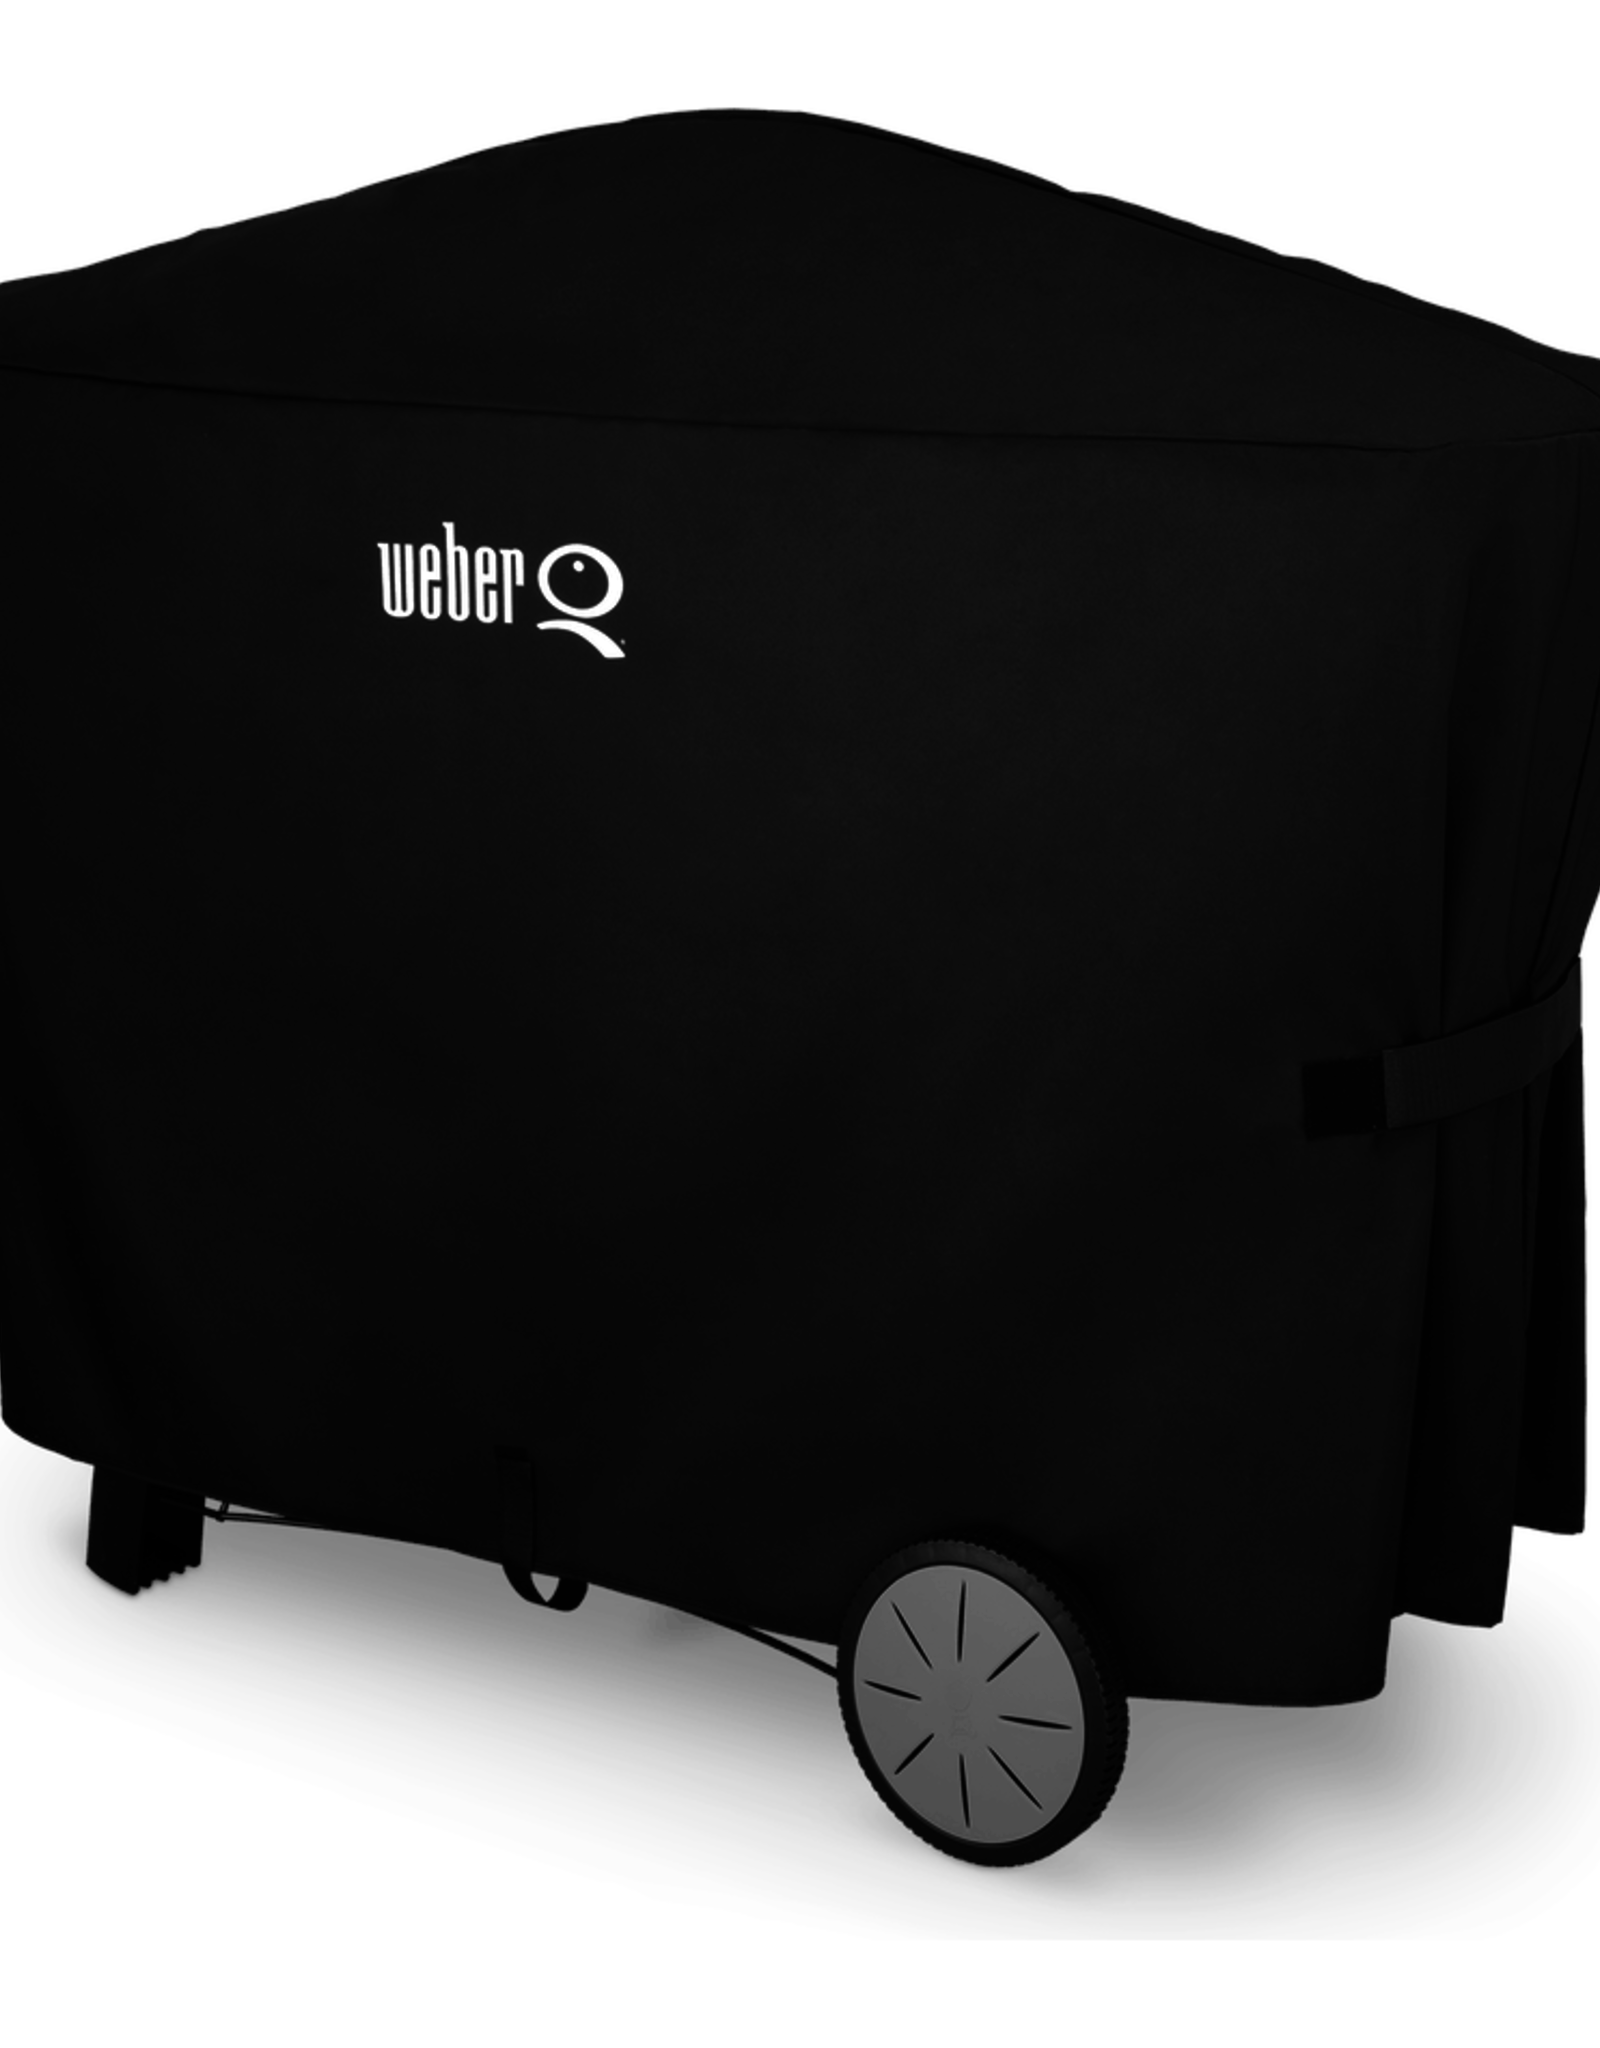 Weber Premium Grill Cover - Fits Weber Q 2000 series grills with Q cart and 3000 series